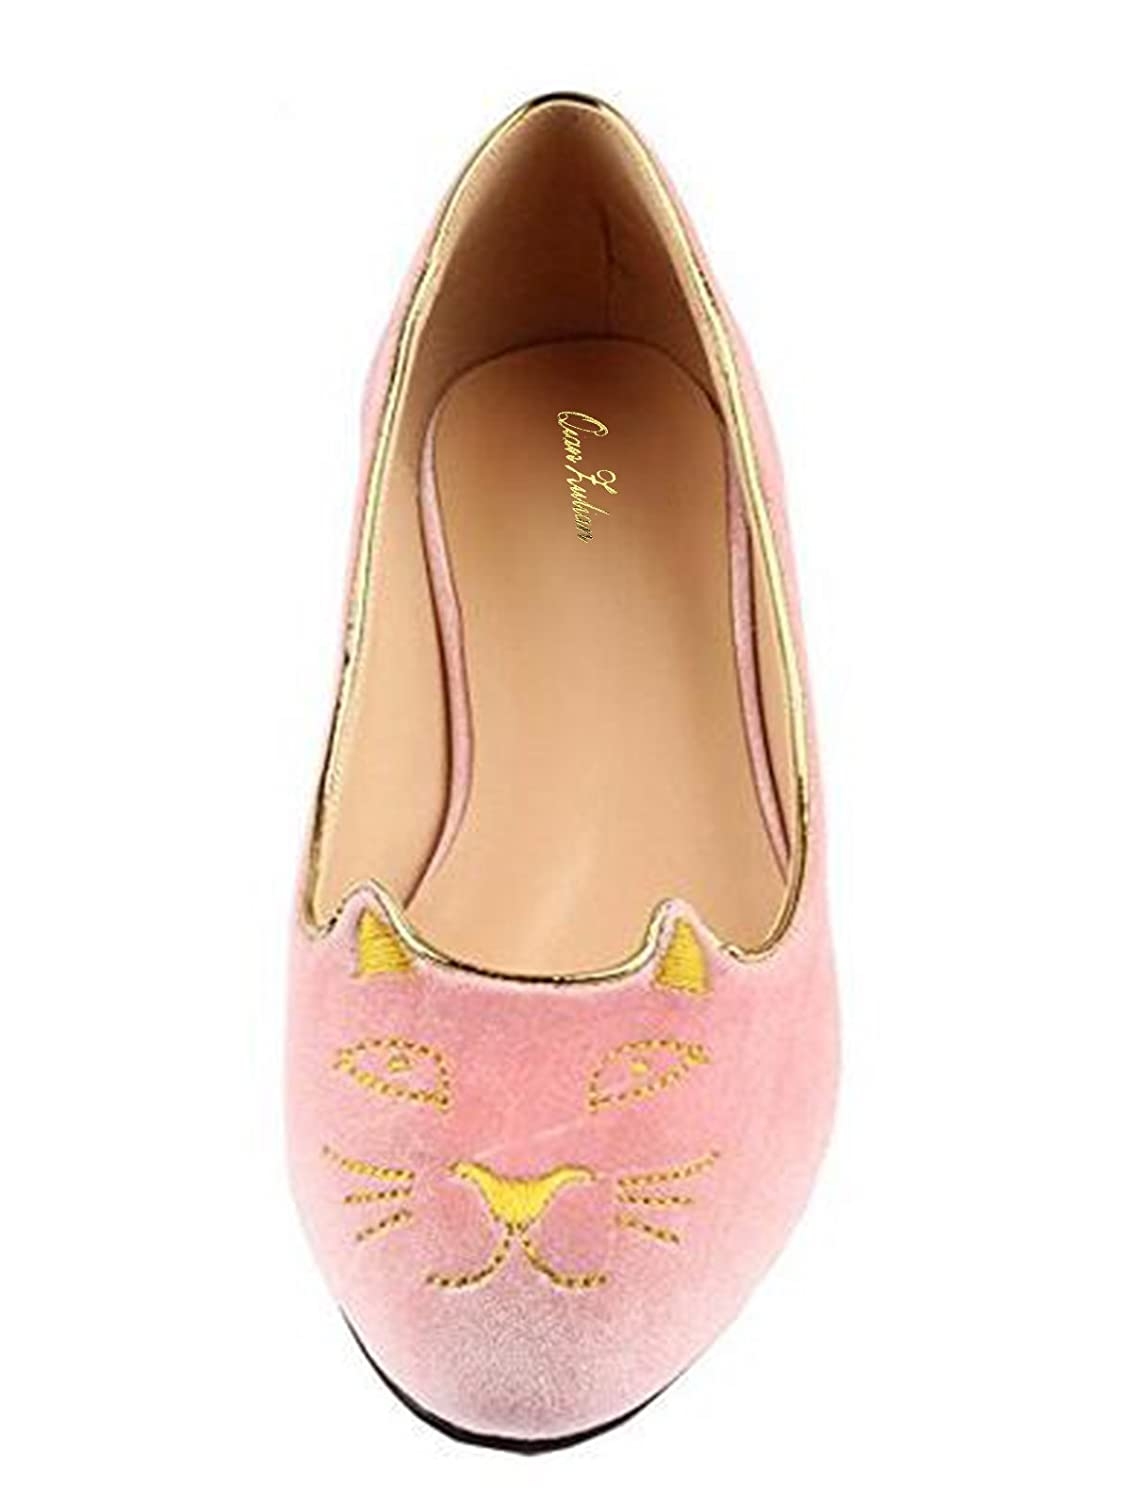 QianZuLian Womens Flats Cat Shape Pumps Round head Slip On Dress Shoes Comfort for Home Leisure On foot B0757WYVGJ 9.5 B(M) US|Pink